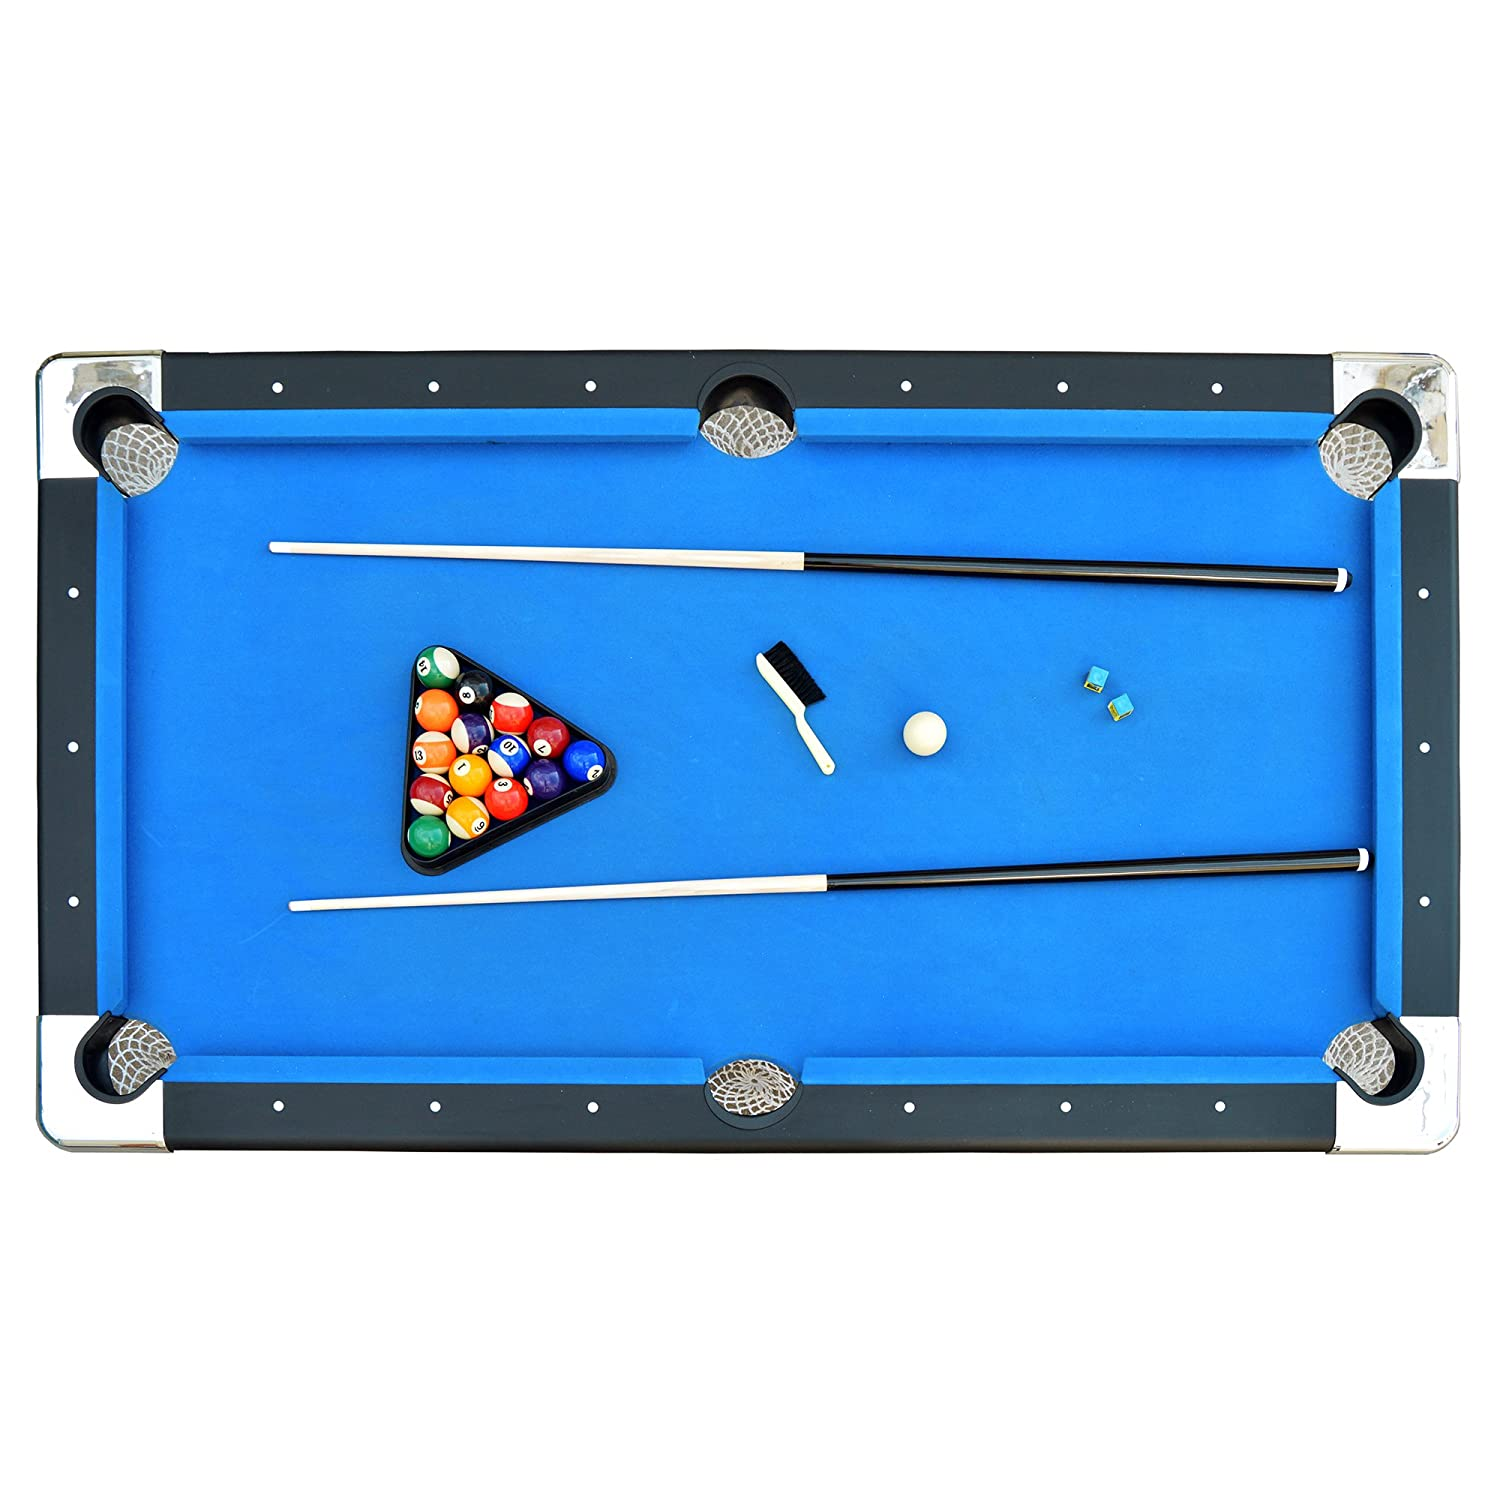 Hathaway Fairmont Foot Portable Pool Table Review - Six foot pool table